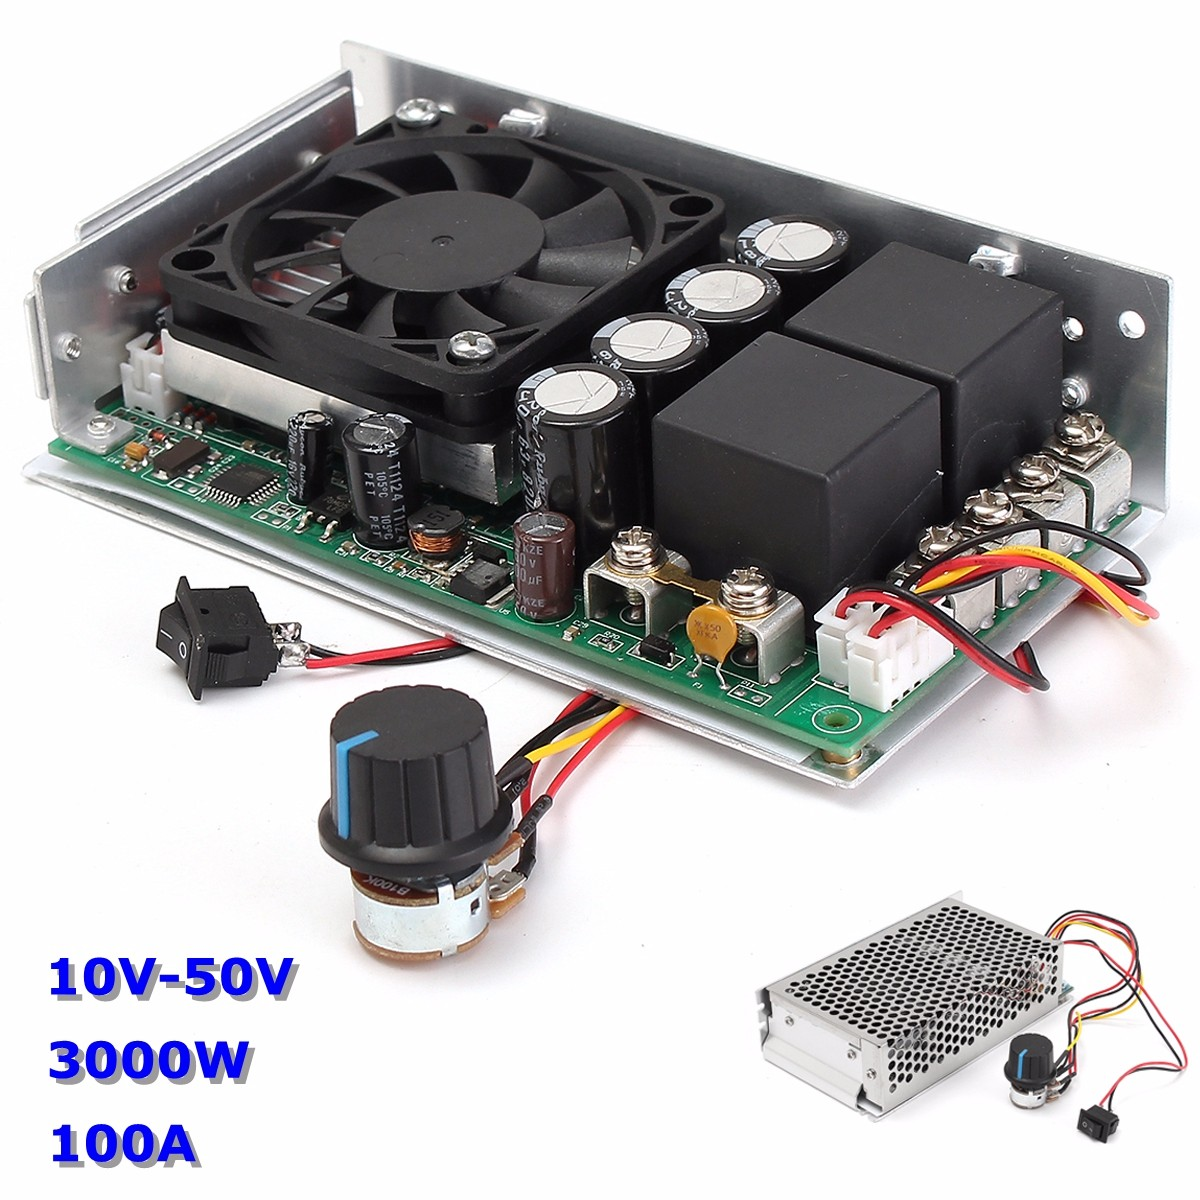 10-50V DC 100A 3000W Programable Reversible DC Motor Speed Controller PWM Control Reversible Electric Motor dhl ems moeller easy 412 dc r programable controller easy412 dc r c3 d9